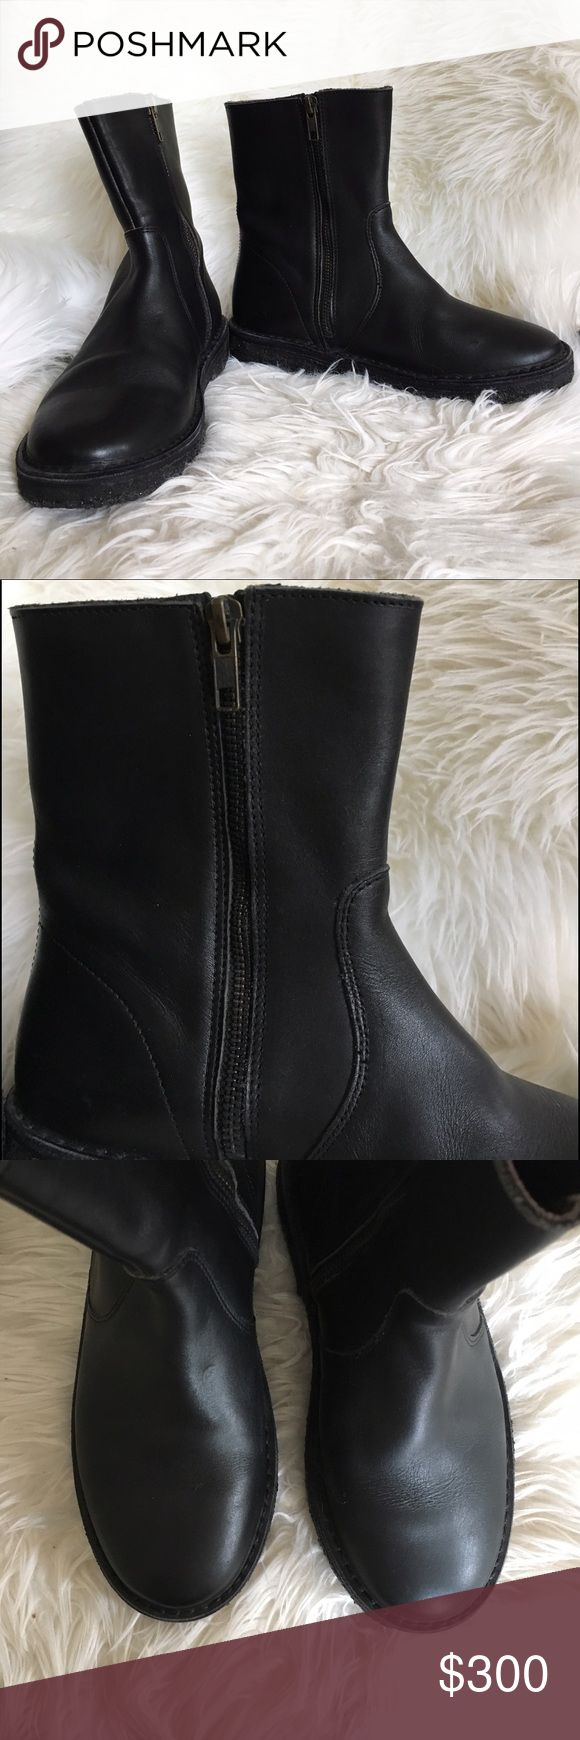 """NWOB A.P.C. Black leather boots Black leather upper and leather lined. Black gum sole has picked up some debris from storage but these have never been worn. Perfect condition. Shaft height 7"""" and 10"""" circumference. 1"""" sole A.P.C. Shoes Combat & Moto Boots"""